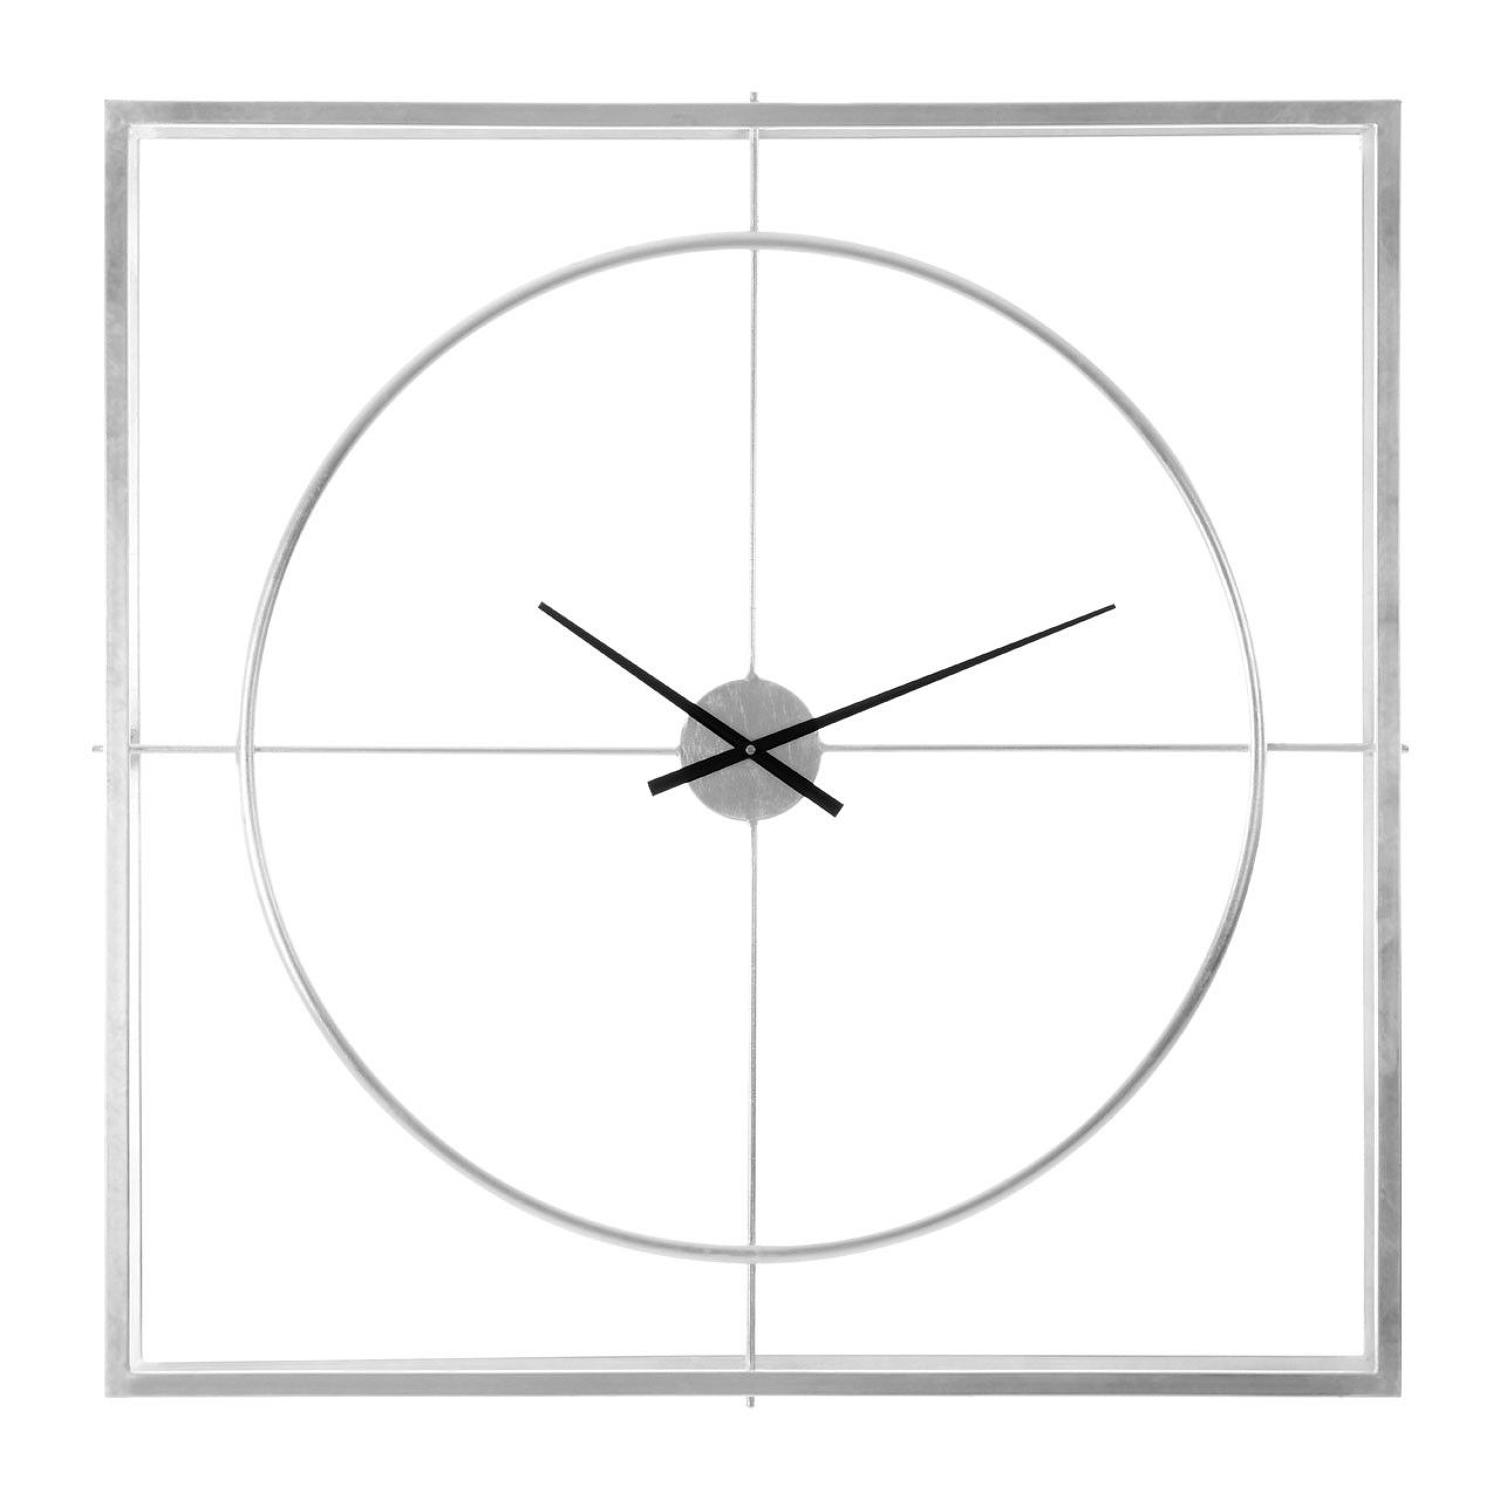 Double layer square metal clock in cool silver